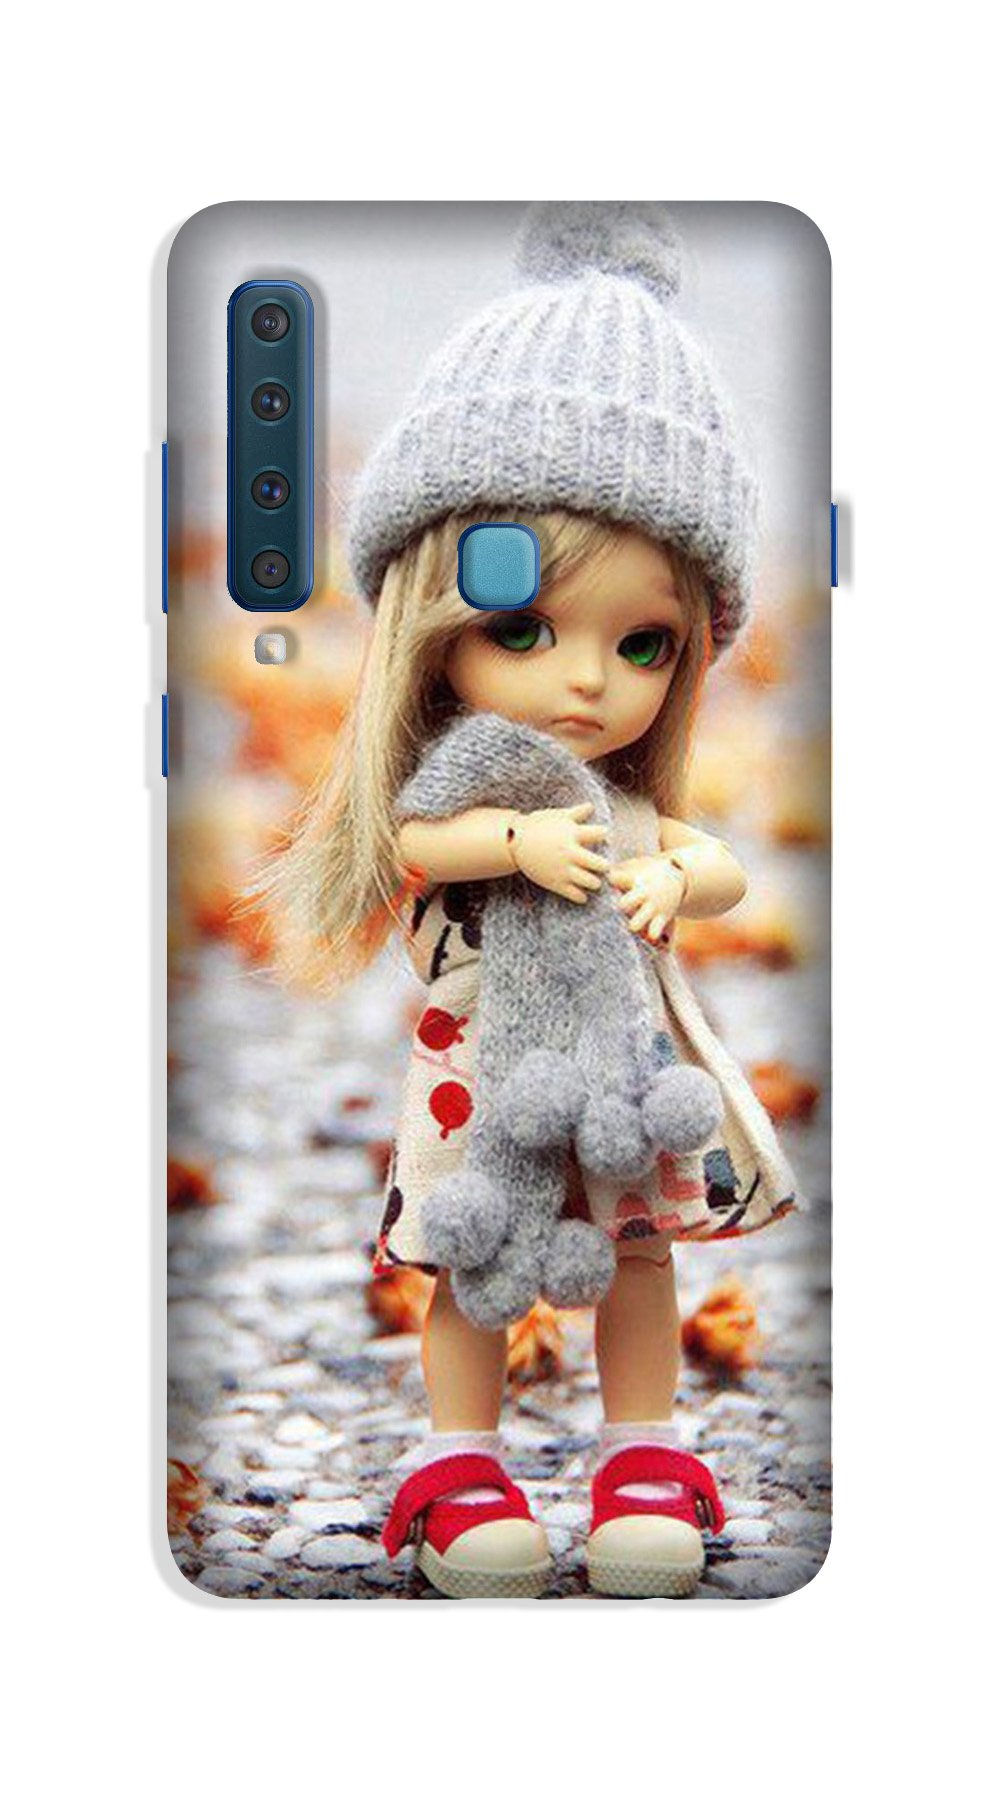 Cute Doll Case for Galaxy A9 (2018)